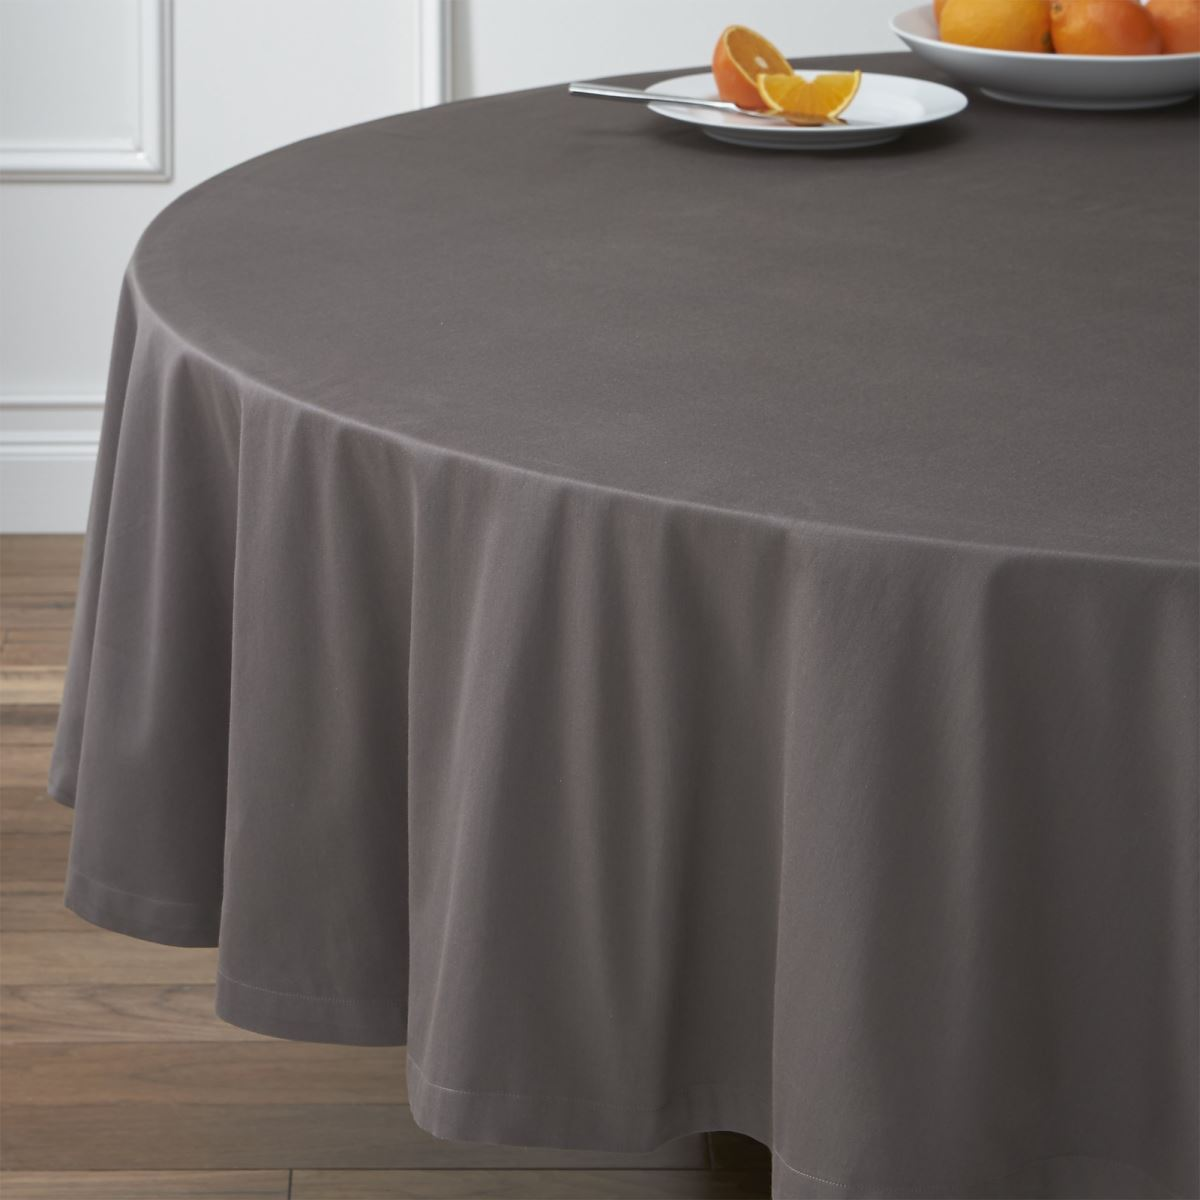 round tablecloths for summer entertaining grey tablecloth from crate barrel accent table cloths view gallery pier stools lamp shades wall lights garden furniture sets marble door